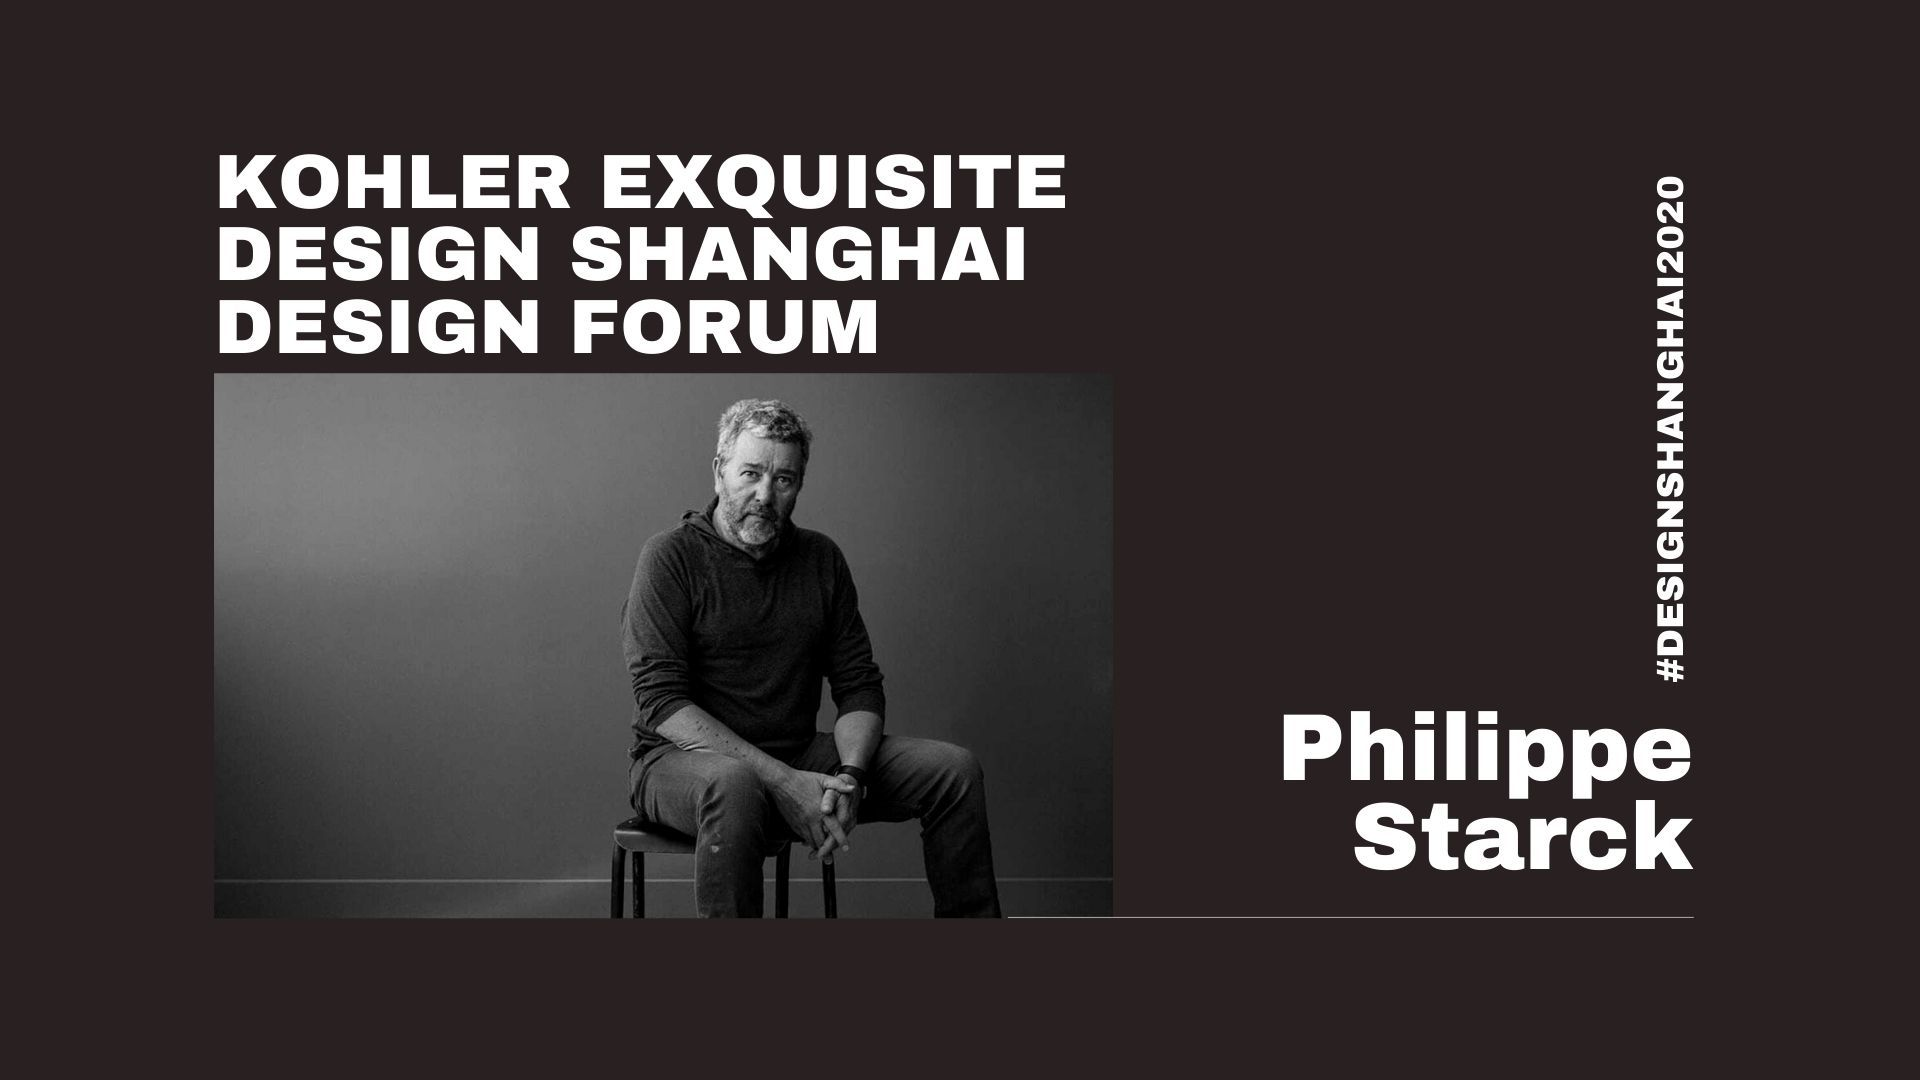 Philippe Starck:Design Visions From The Great Design Visionary